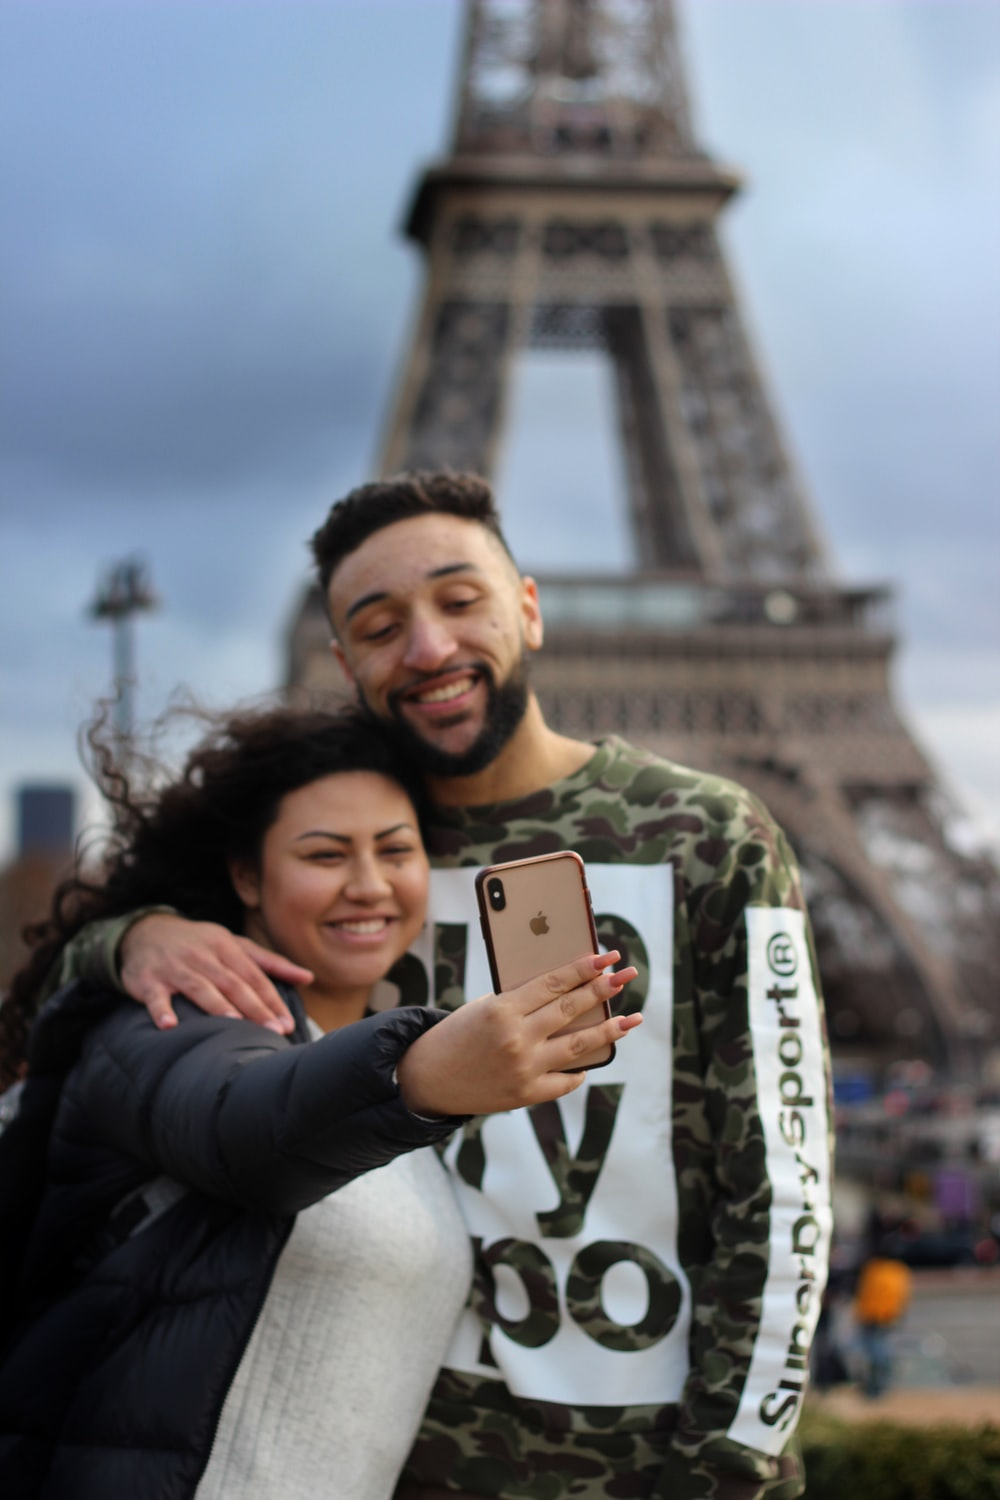 man and woman taking picture near Eiffel Tower in Paris